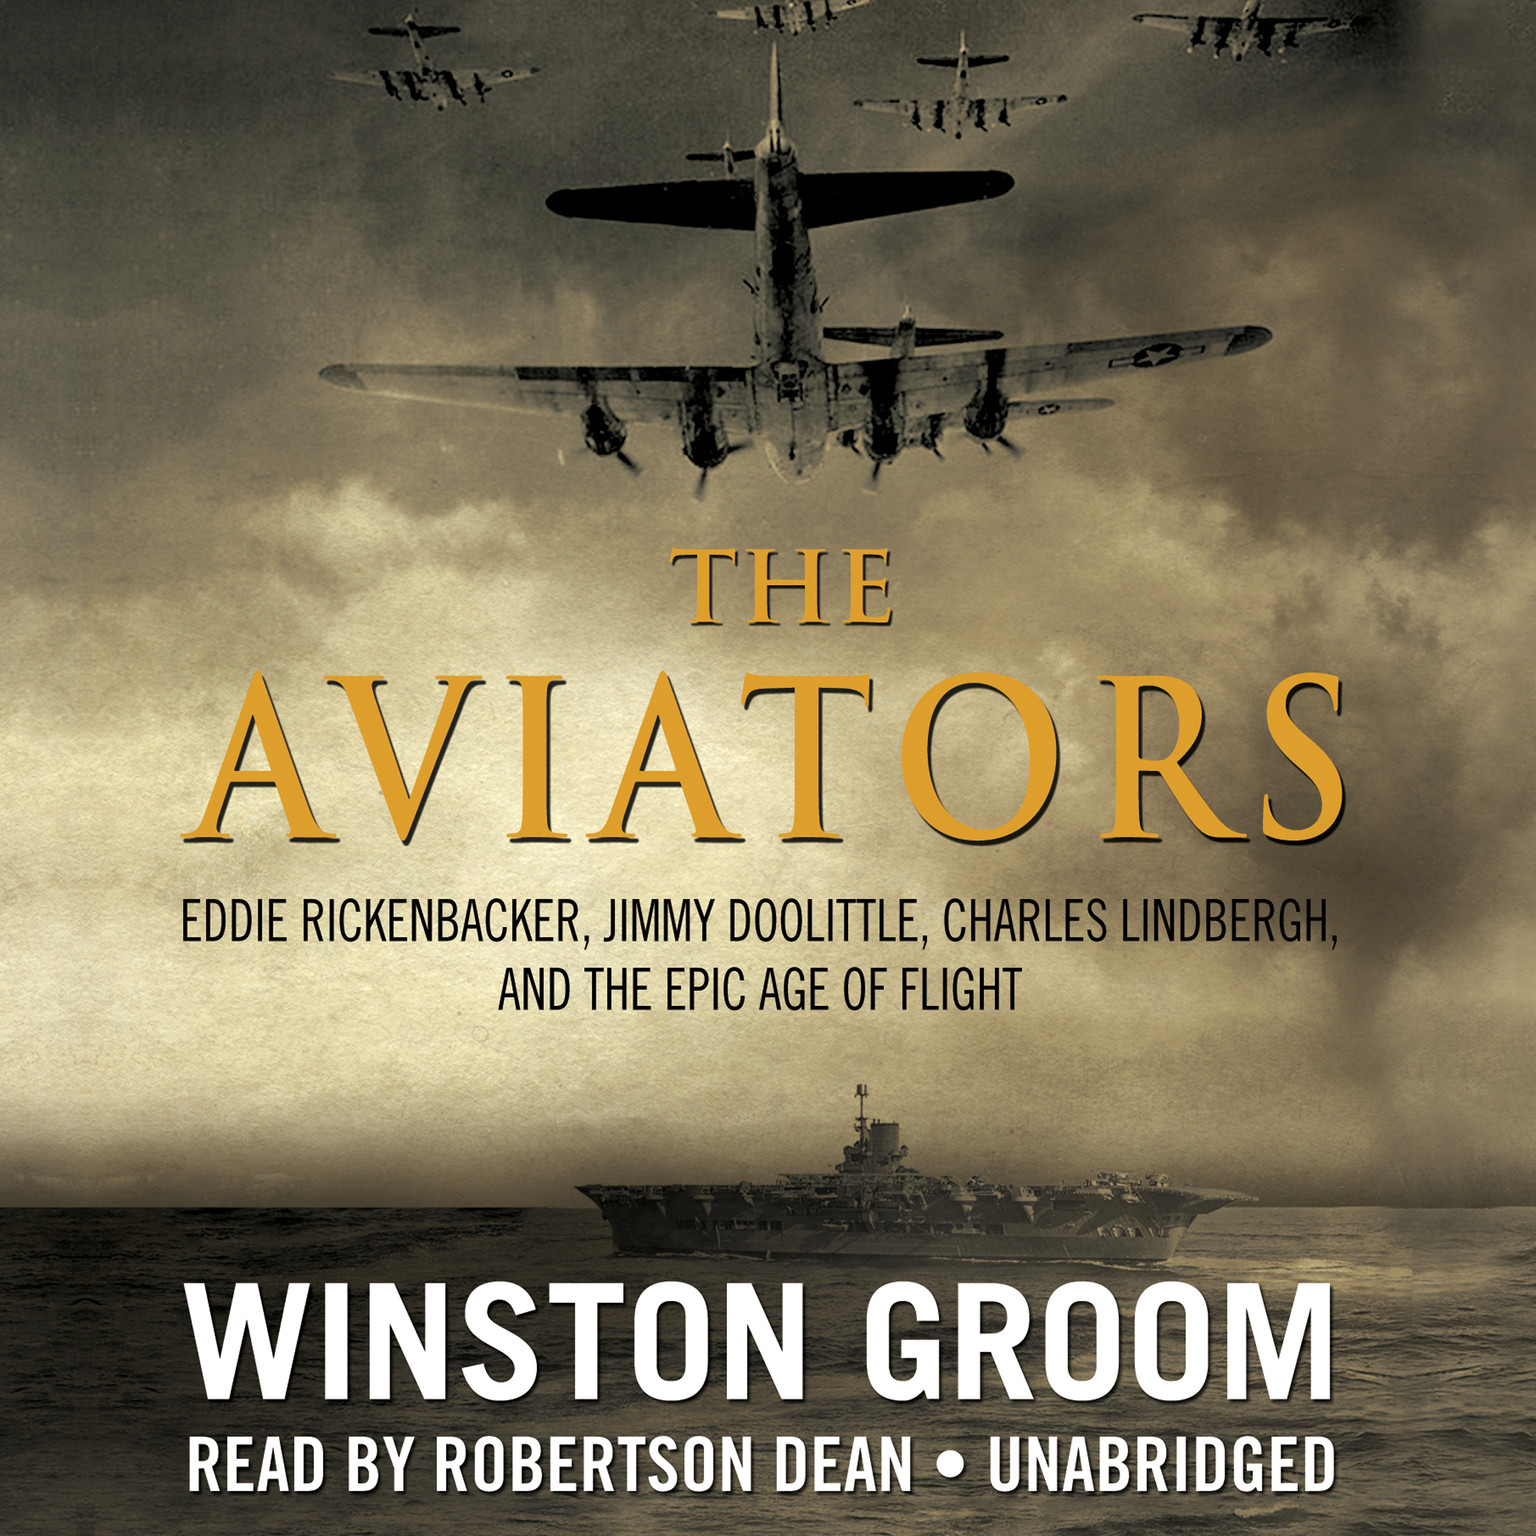 Printable The Aviators: Eddie Rickenbacker, Jimmy Doolittle, Charles Lindbergh, and the Epic Age of Flight Audiobook Cover Art